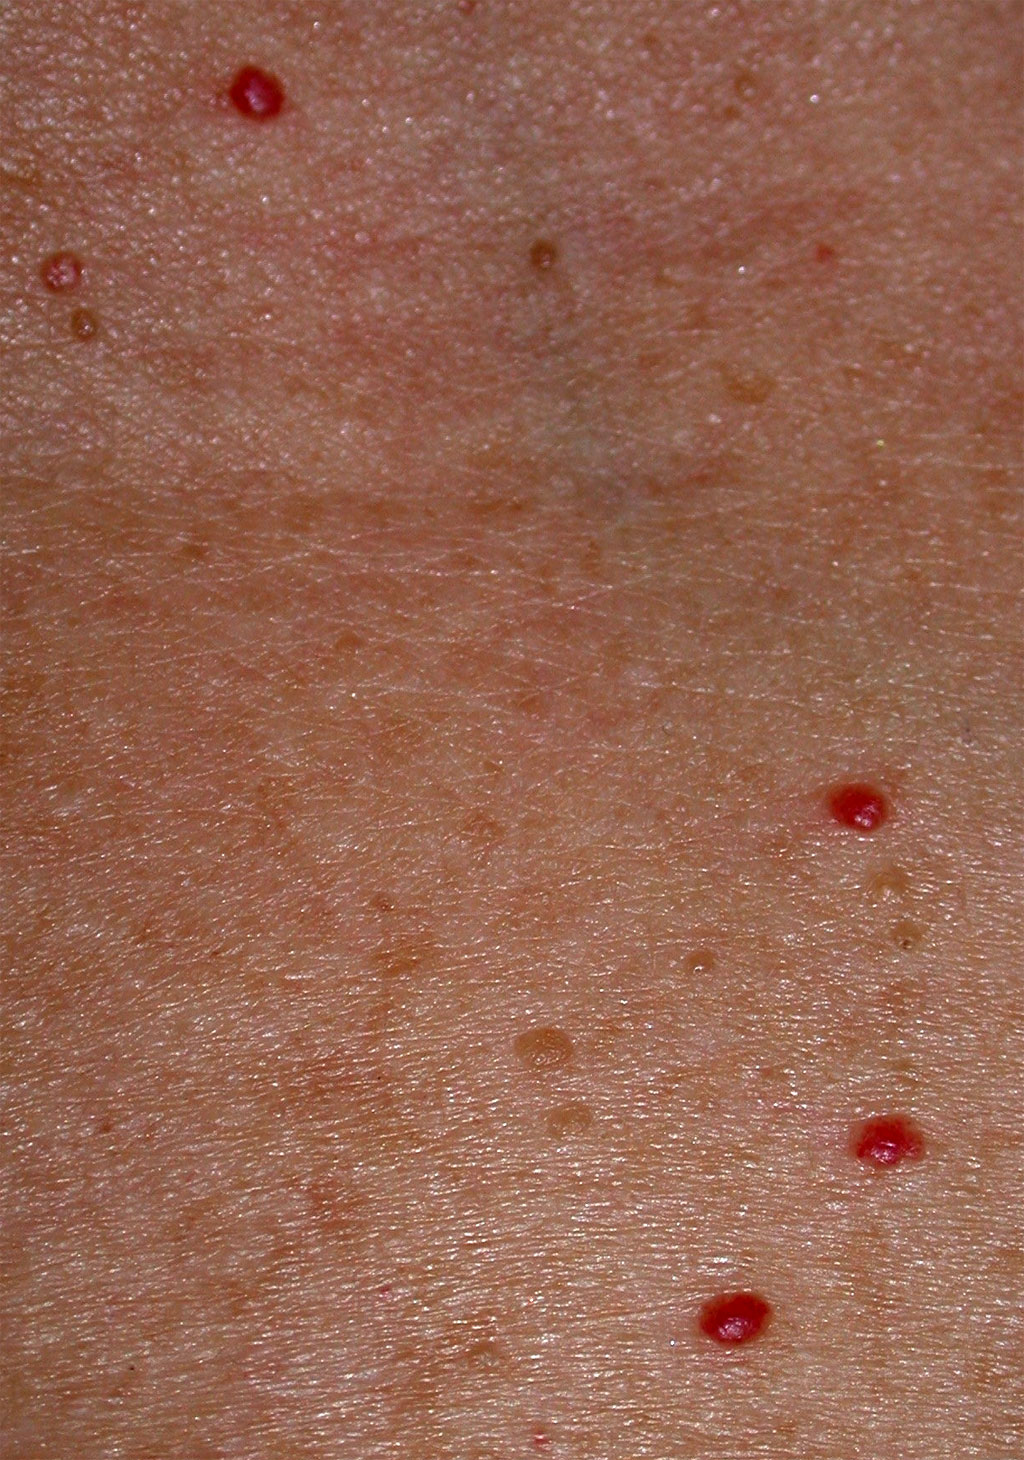 An example of Cherry Angiomas (Campbell de Morgan spots).